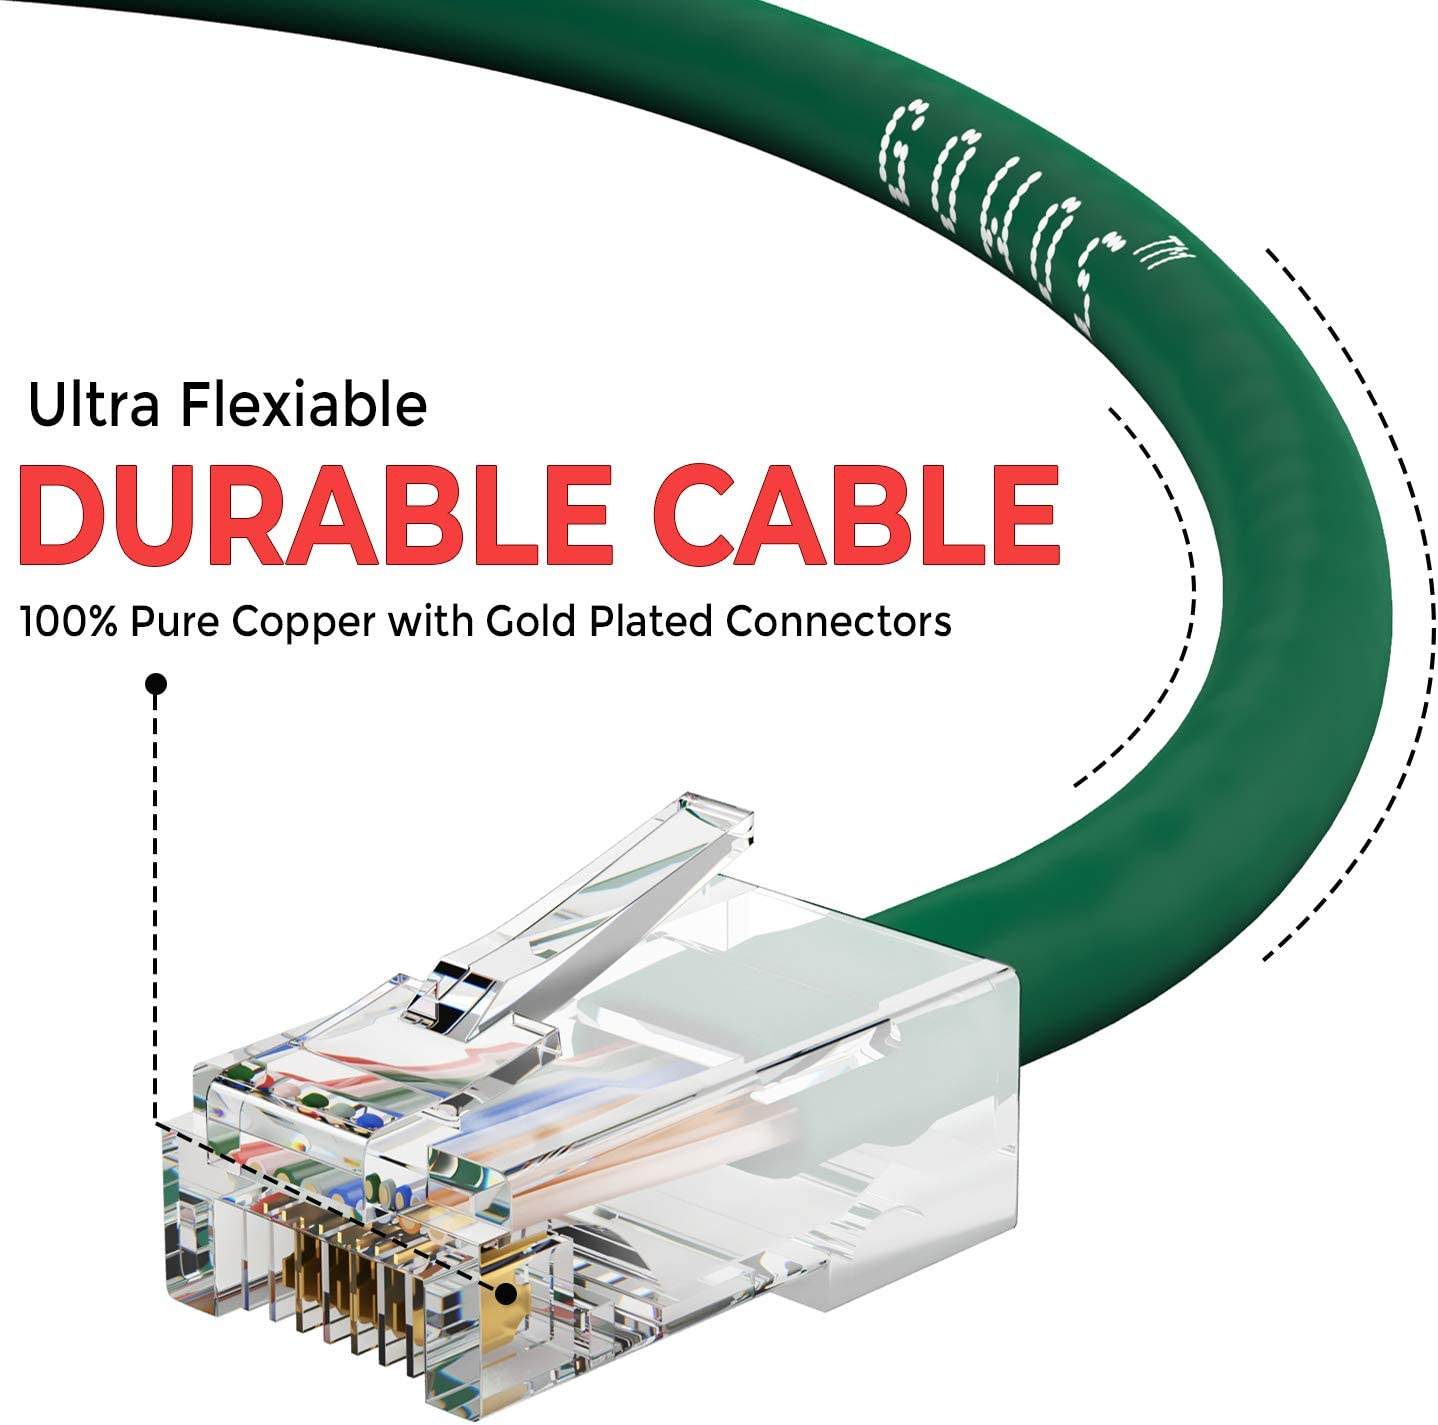 Computer Network Cable with Bootless Connector UTP RJ45 10Gbps High Speed LAN Internet Patch Cord Available in 28 Lengths and 10 Colors 2 Feet - White Cat6 Ethernet Cable GOWOS 10-Pack